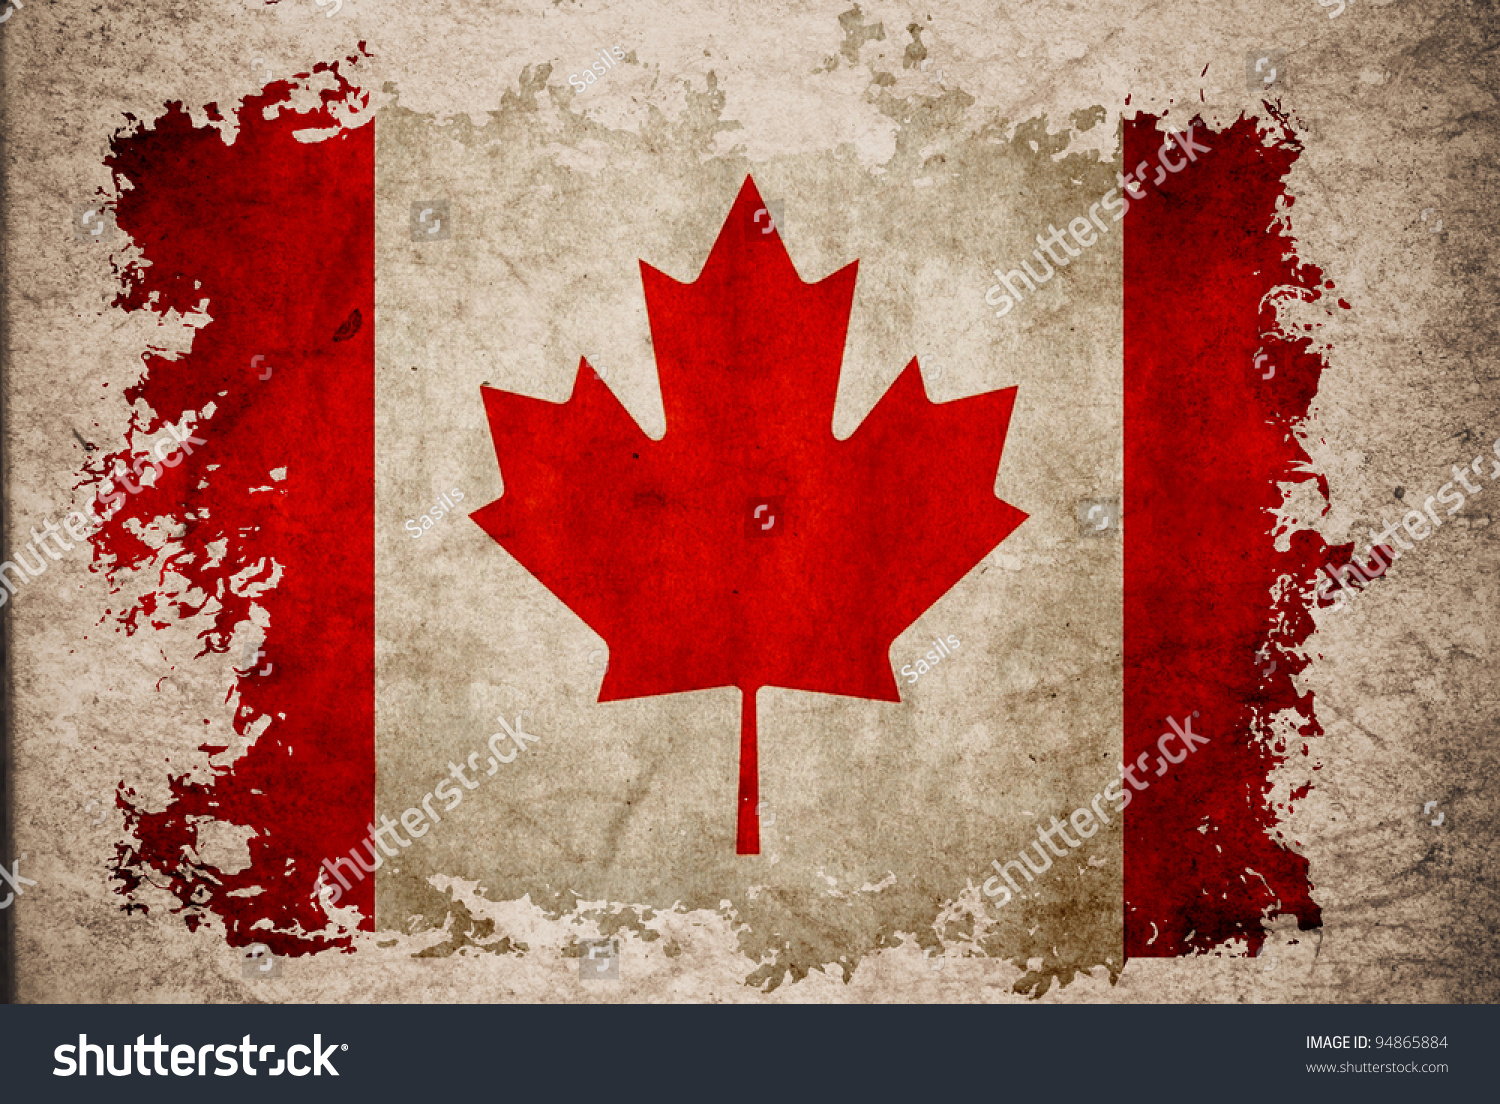 Defining Moments in Canadian history Essay Sample